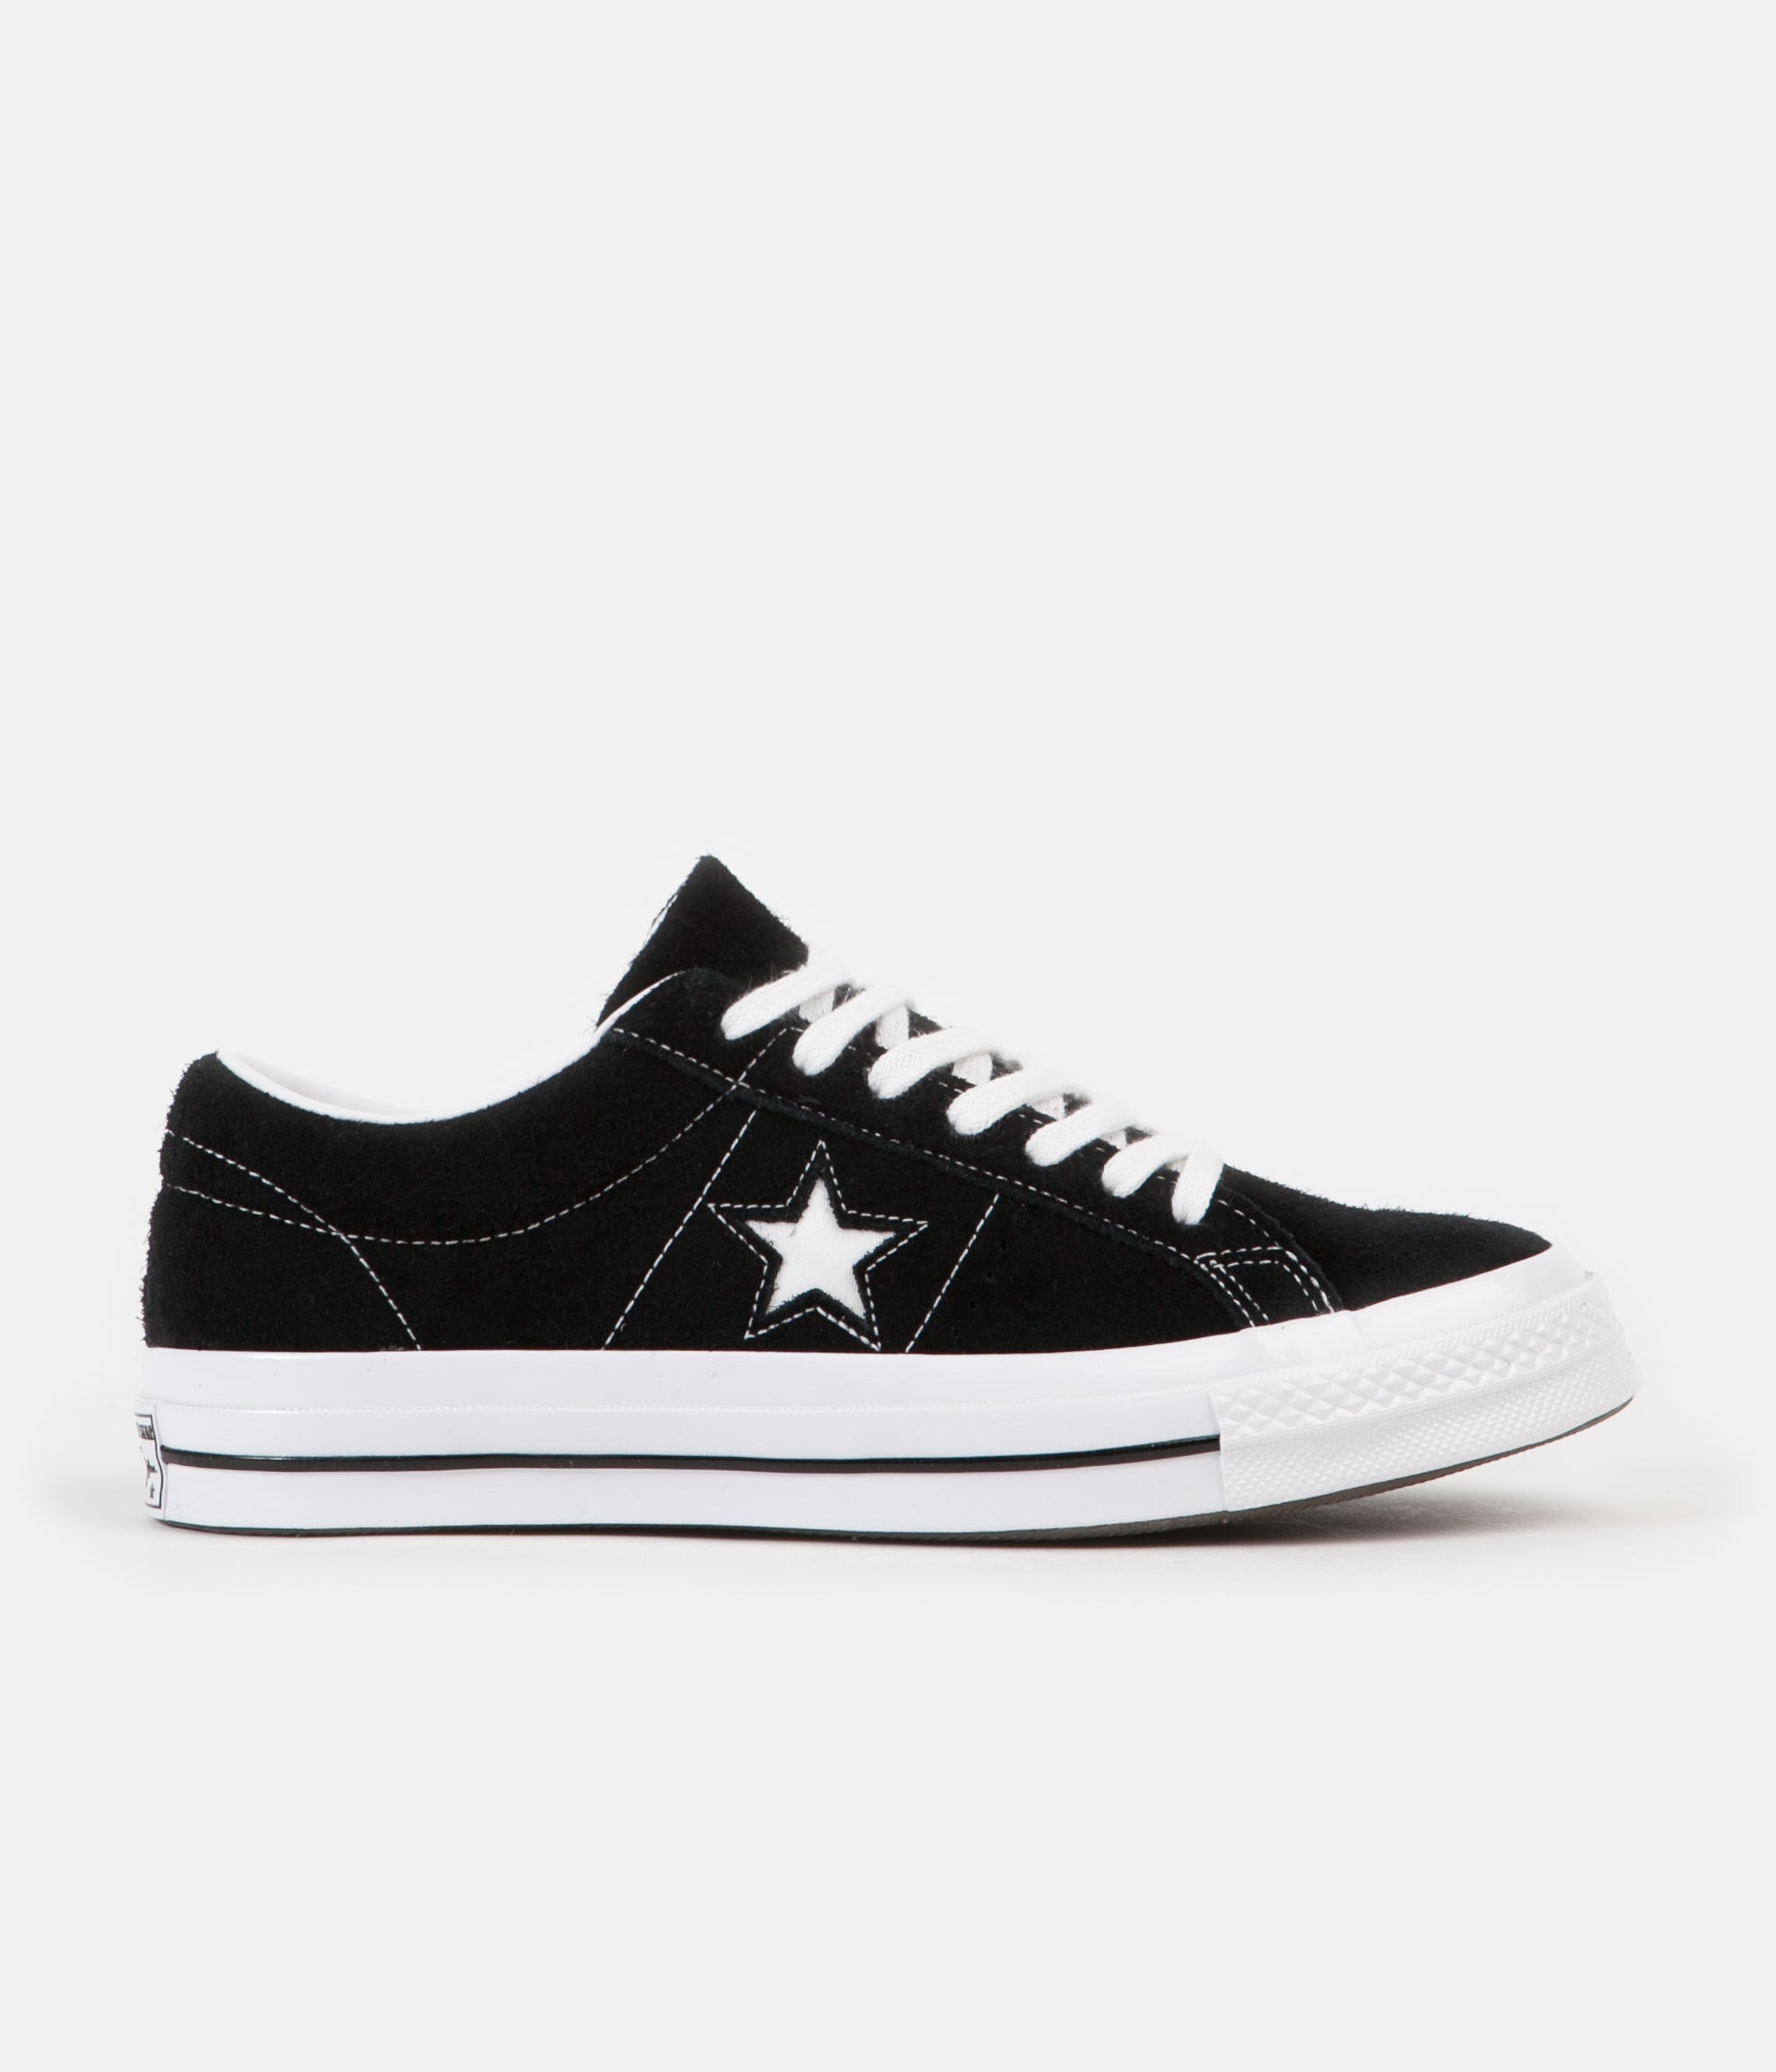 0204c4d93856 ... Converse One Star Ox Shoes - Black   White   White ...